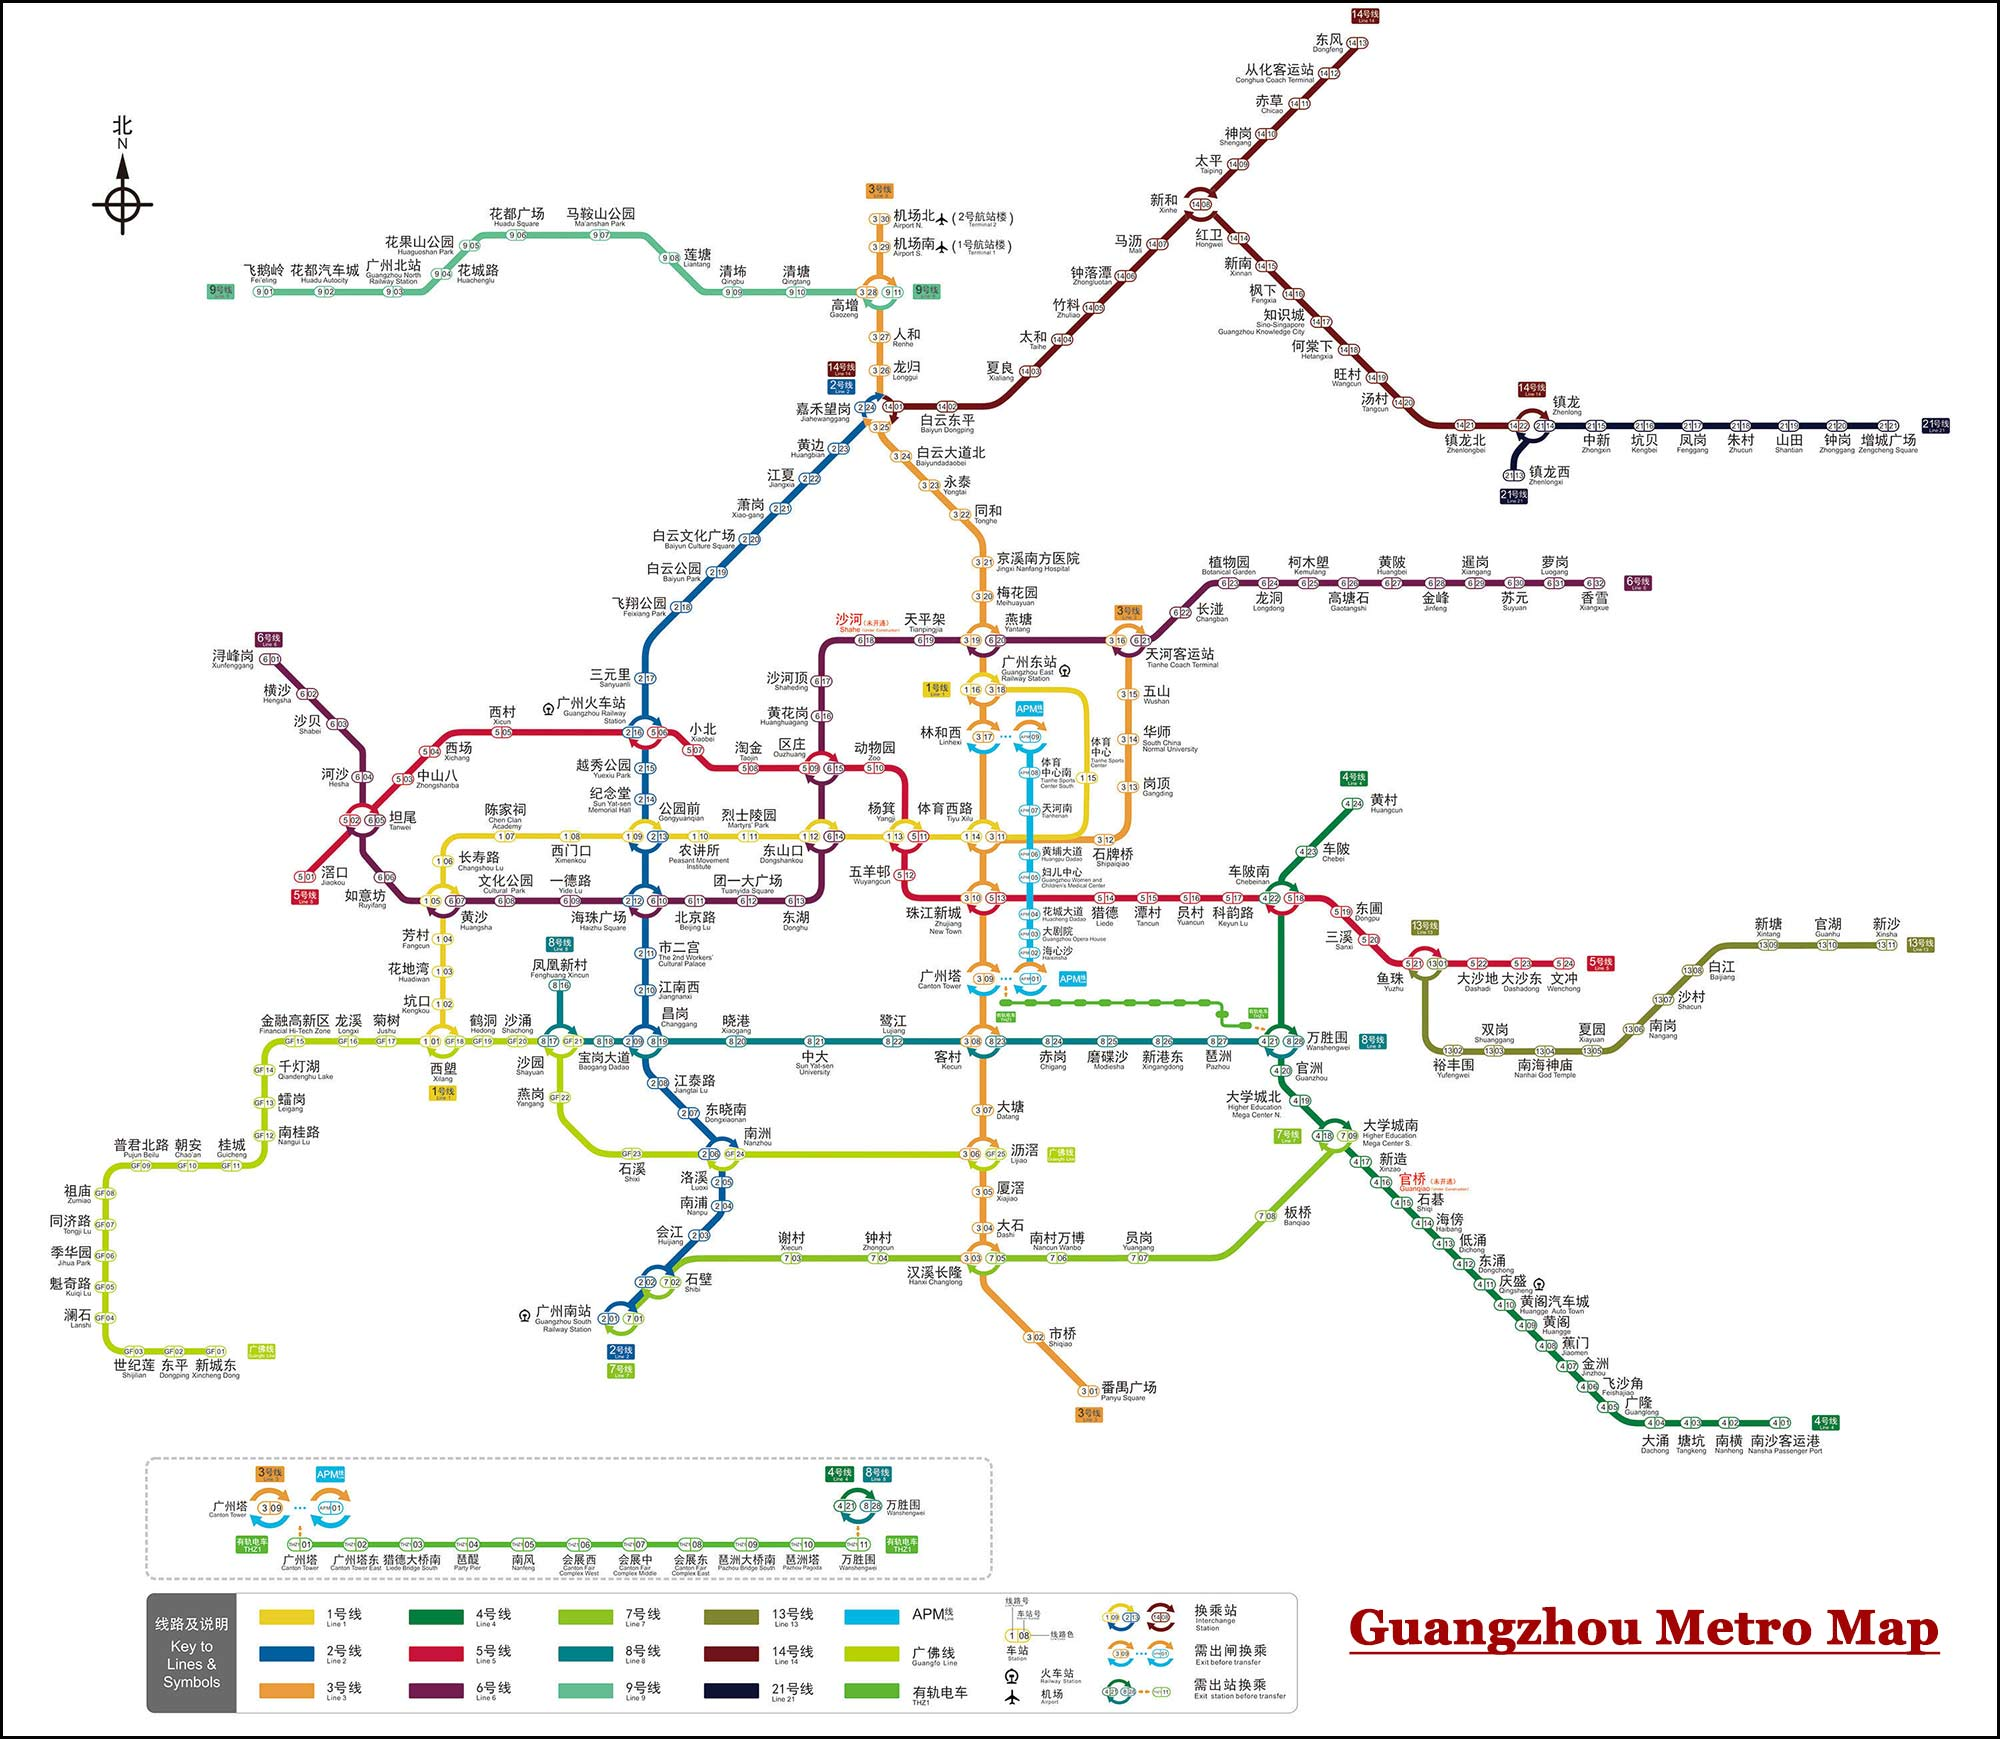 Subway Map Holiday.Guangzhou Metro Map Lines Stations Operating Hours Tickets 2019